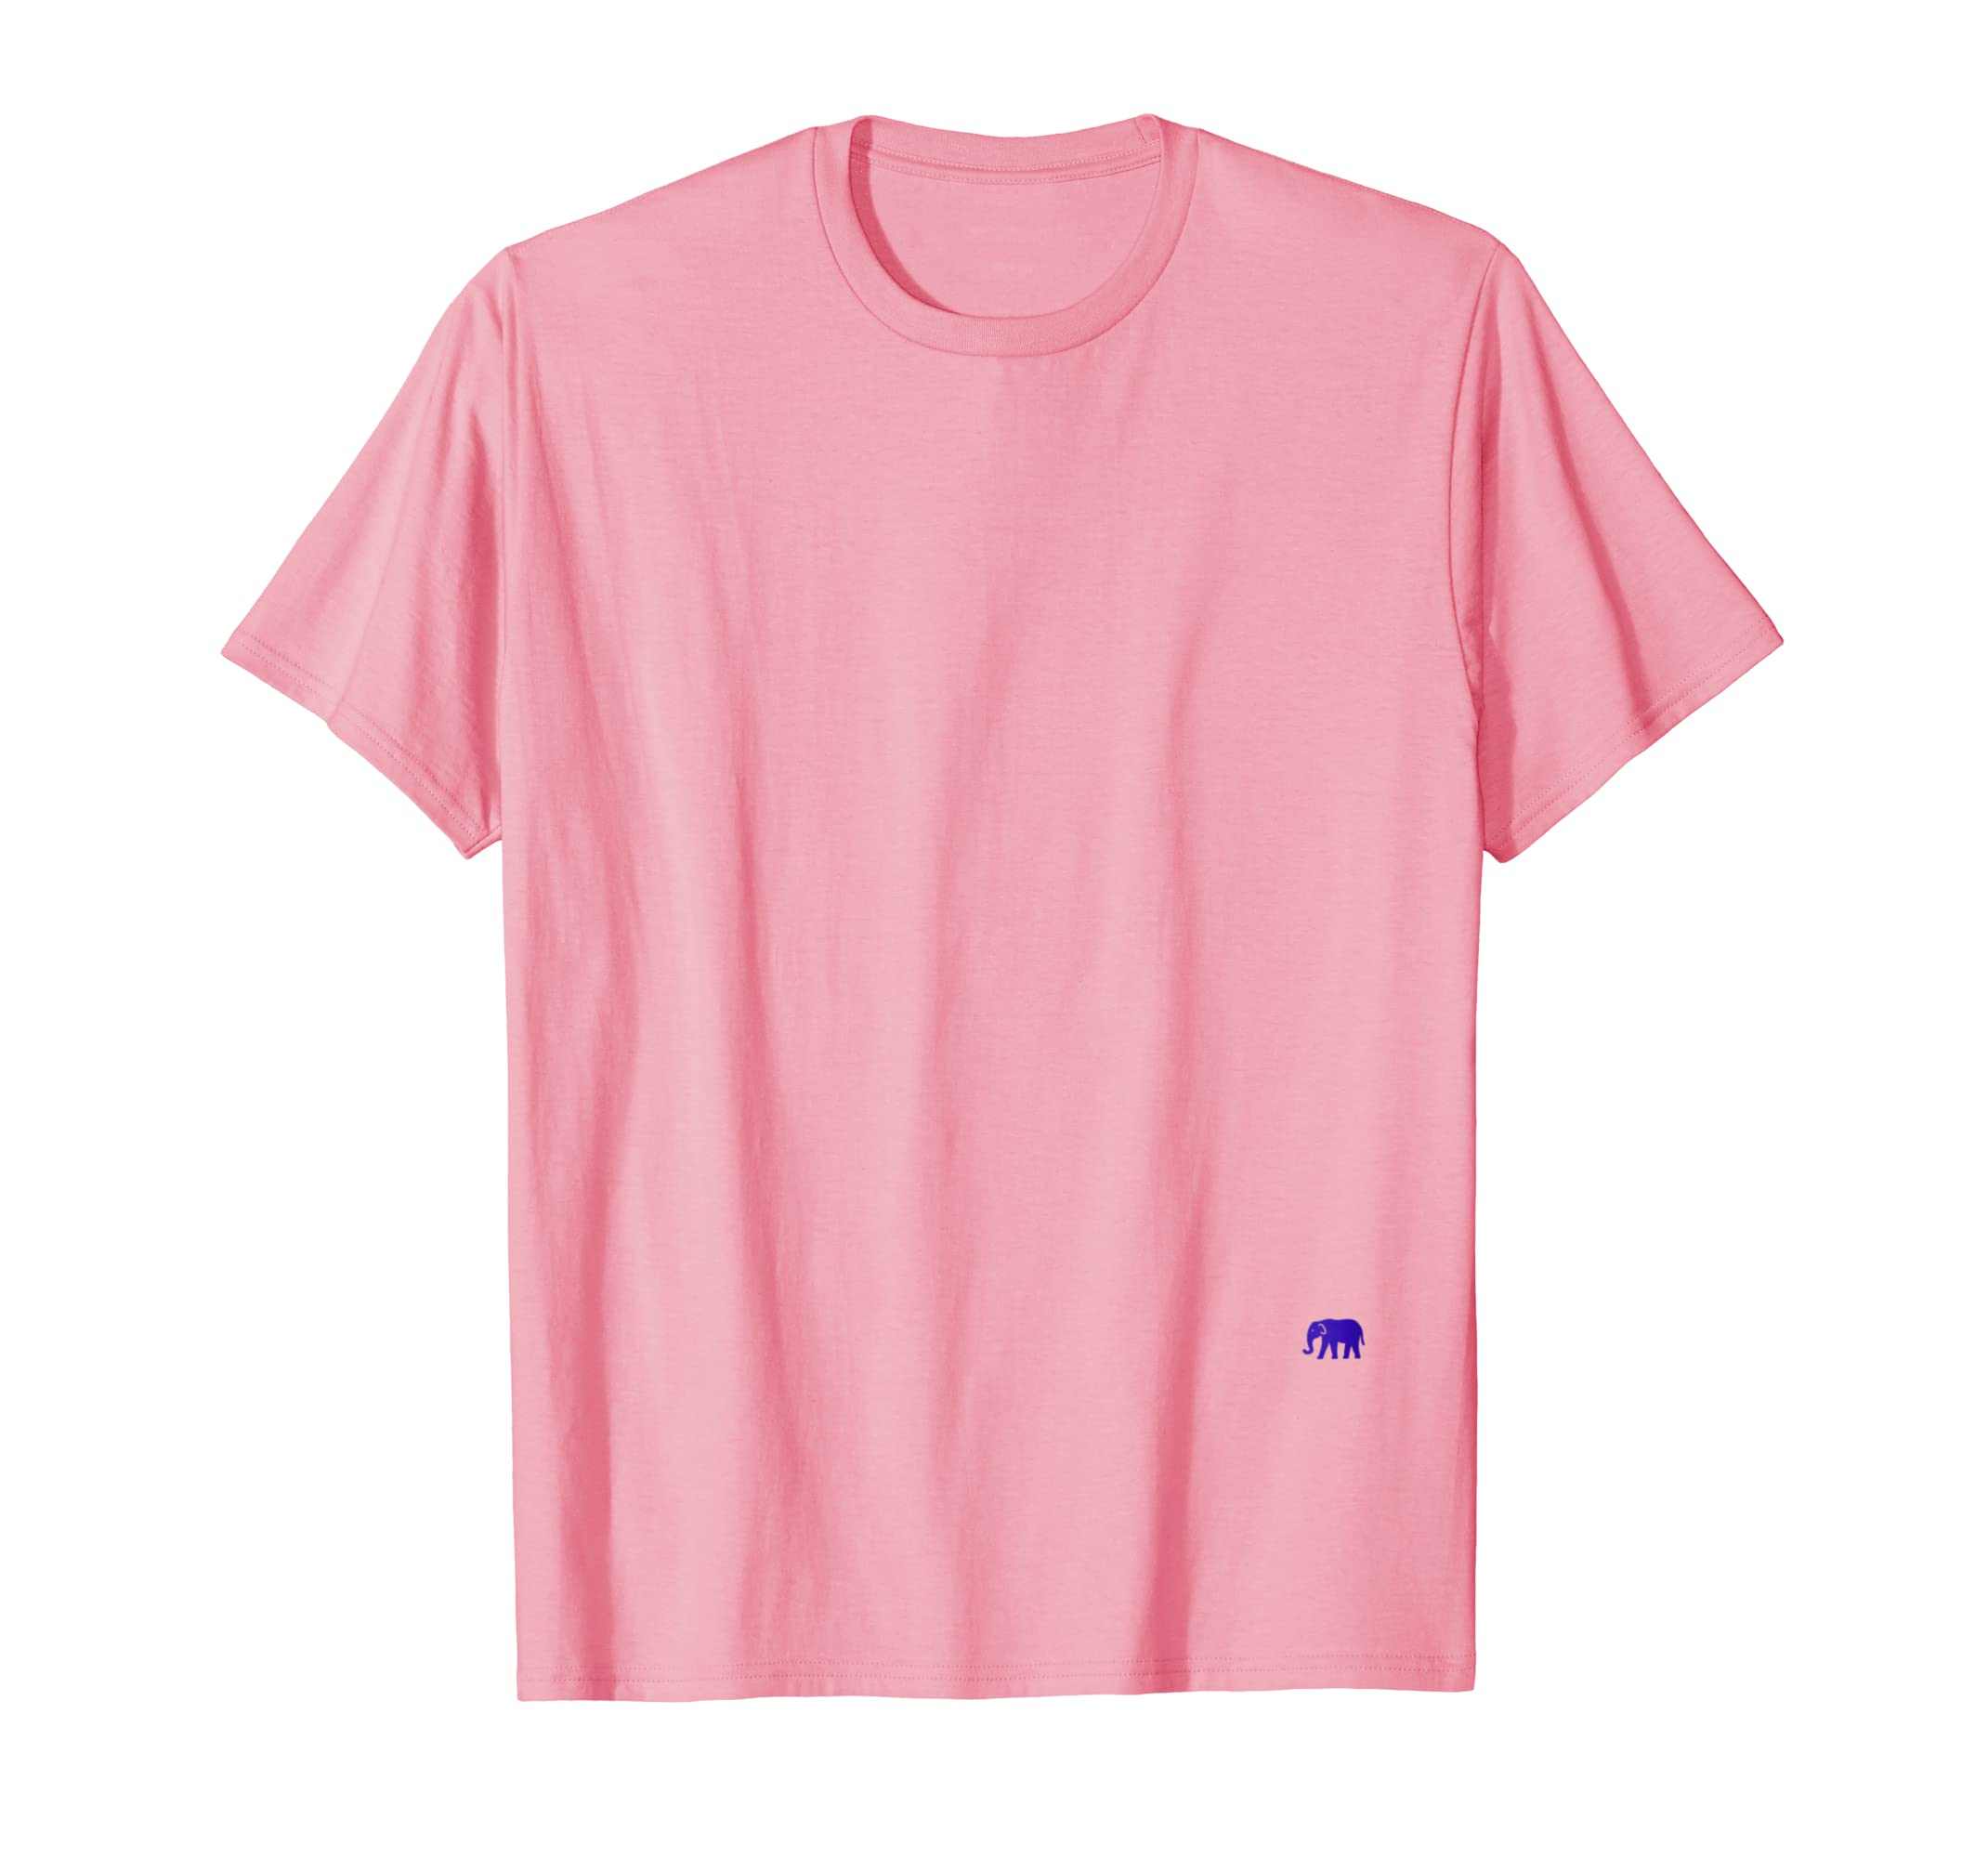 2ecf48e3 Amazon.com: Plain Pink T Shirts For Men, Women, Boys, Girls, Teens: Clothing